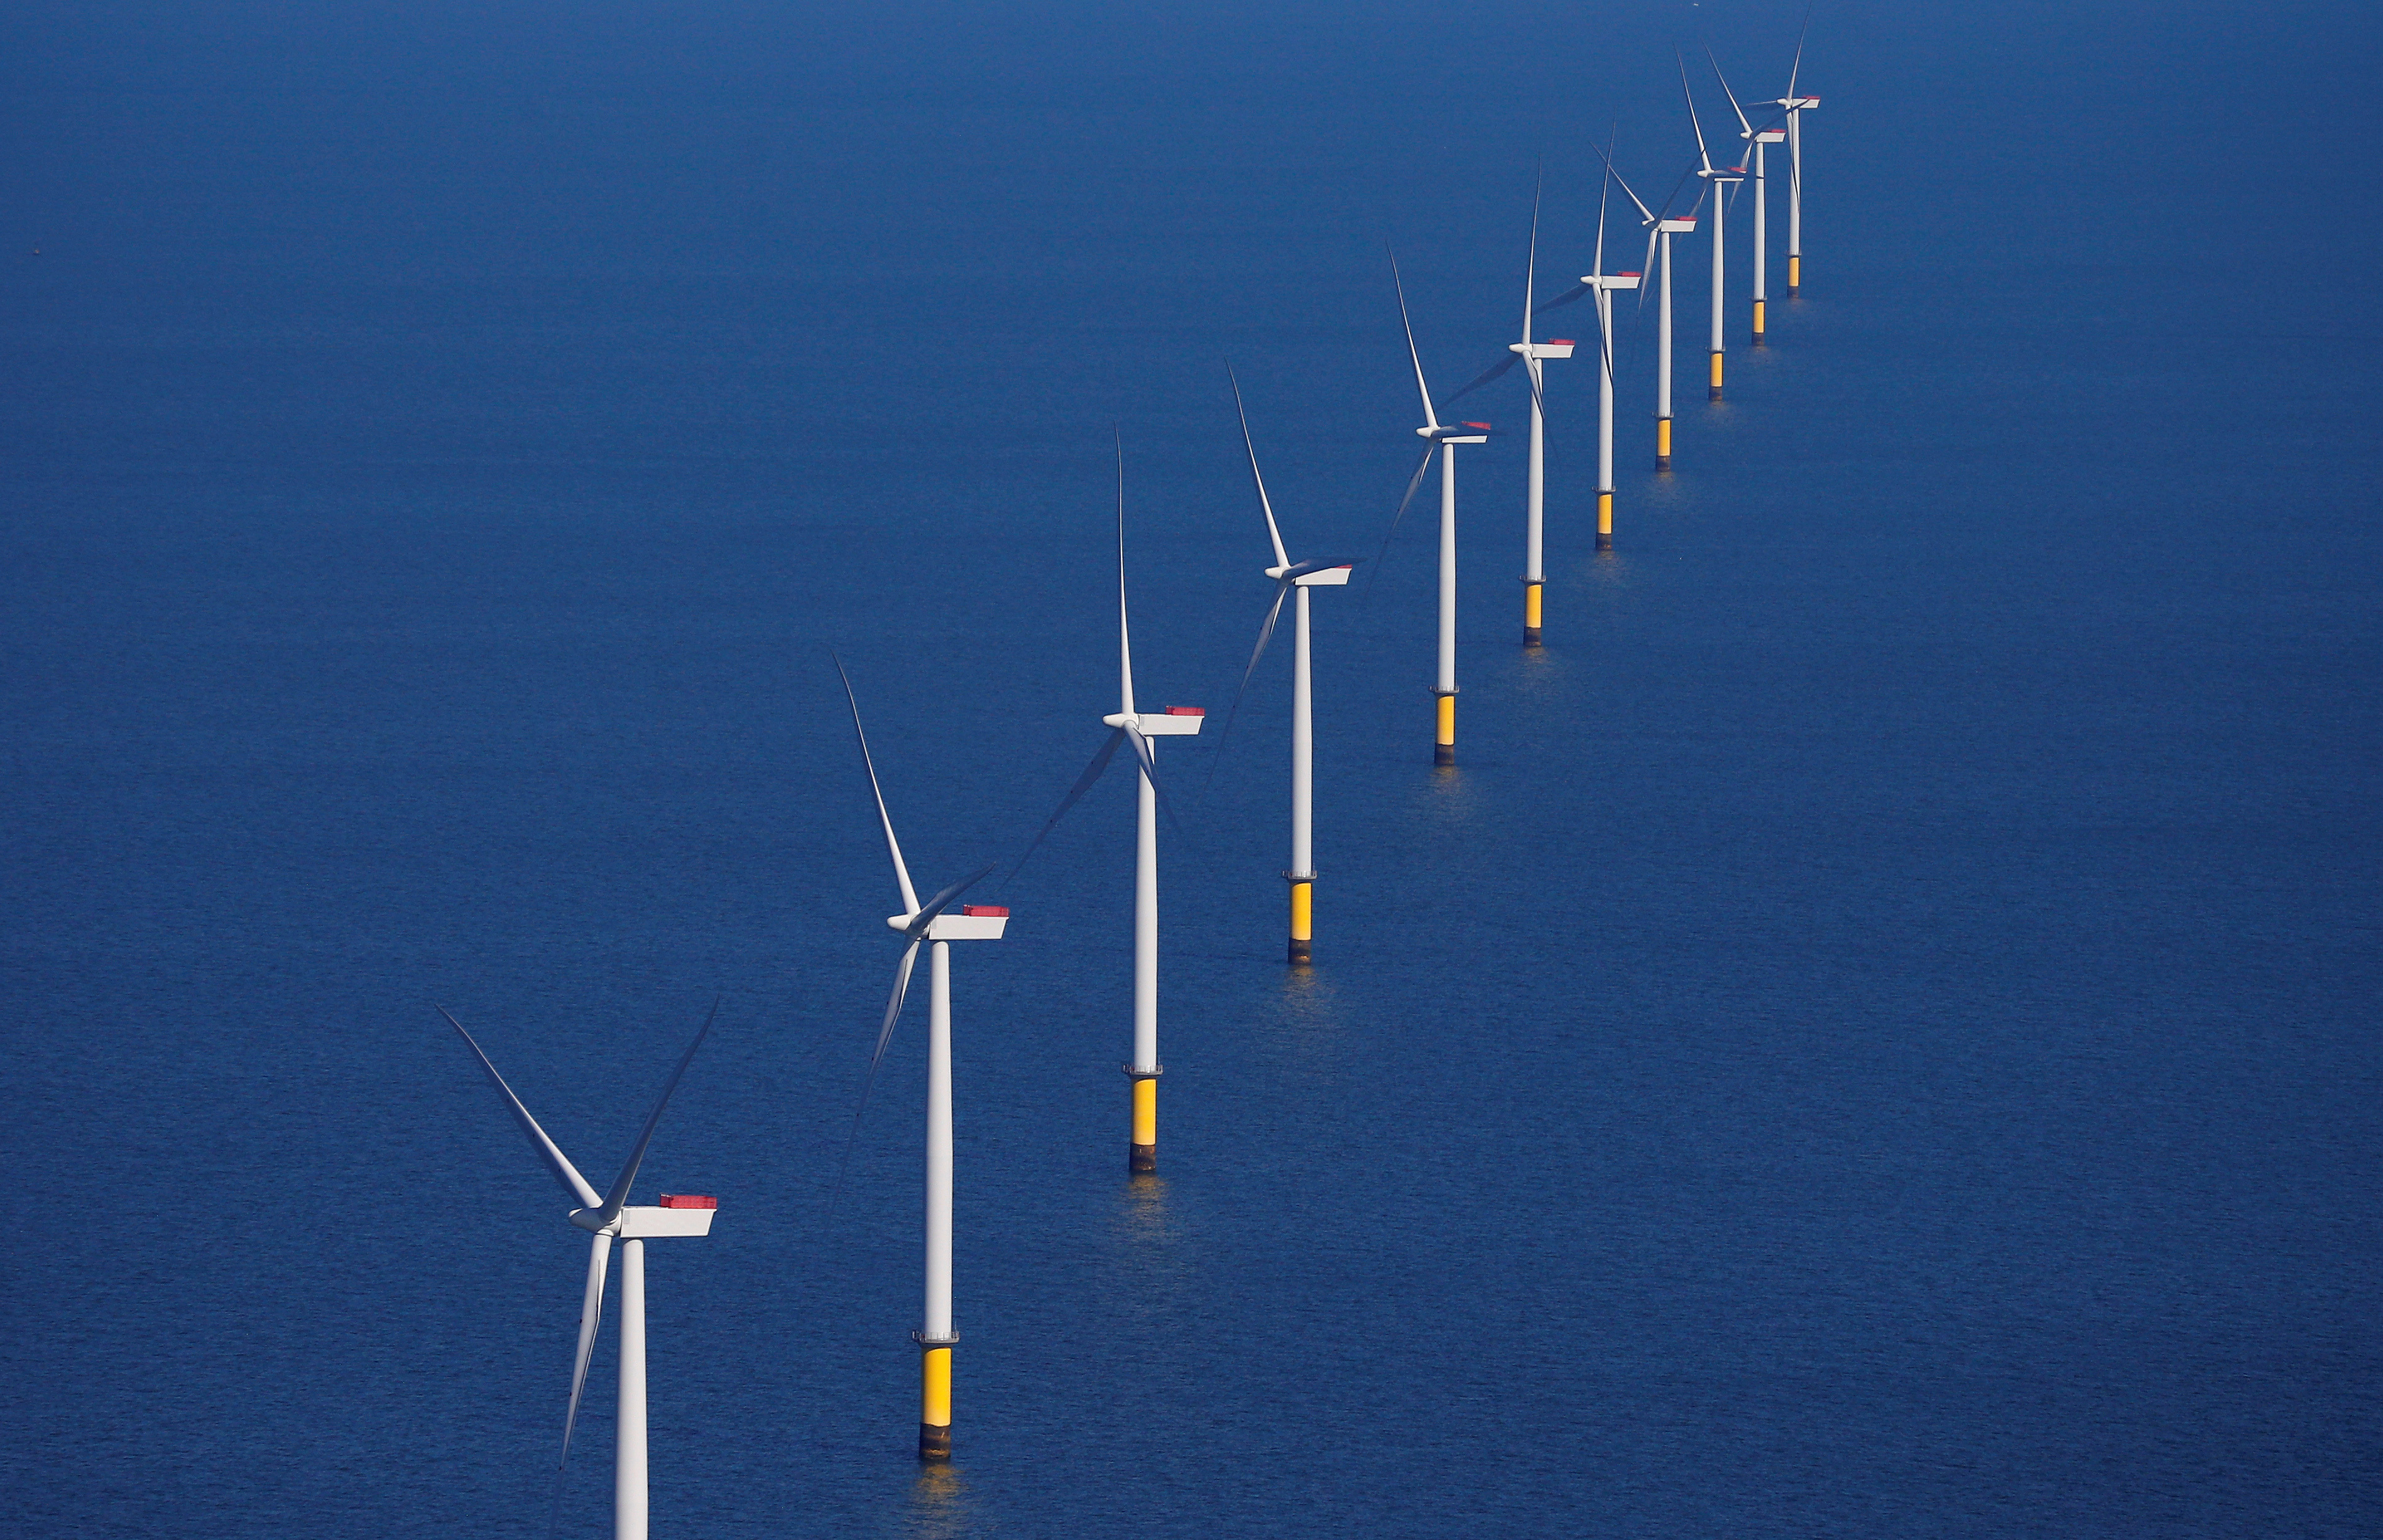 FILE PHOTO: General view of the Walney Extension offshore wind farm operated by Orsted off the coast of Blackpool, Britain September 5, 2018. REUTERS/Phil Noble/File Photo/File Photo